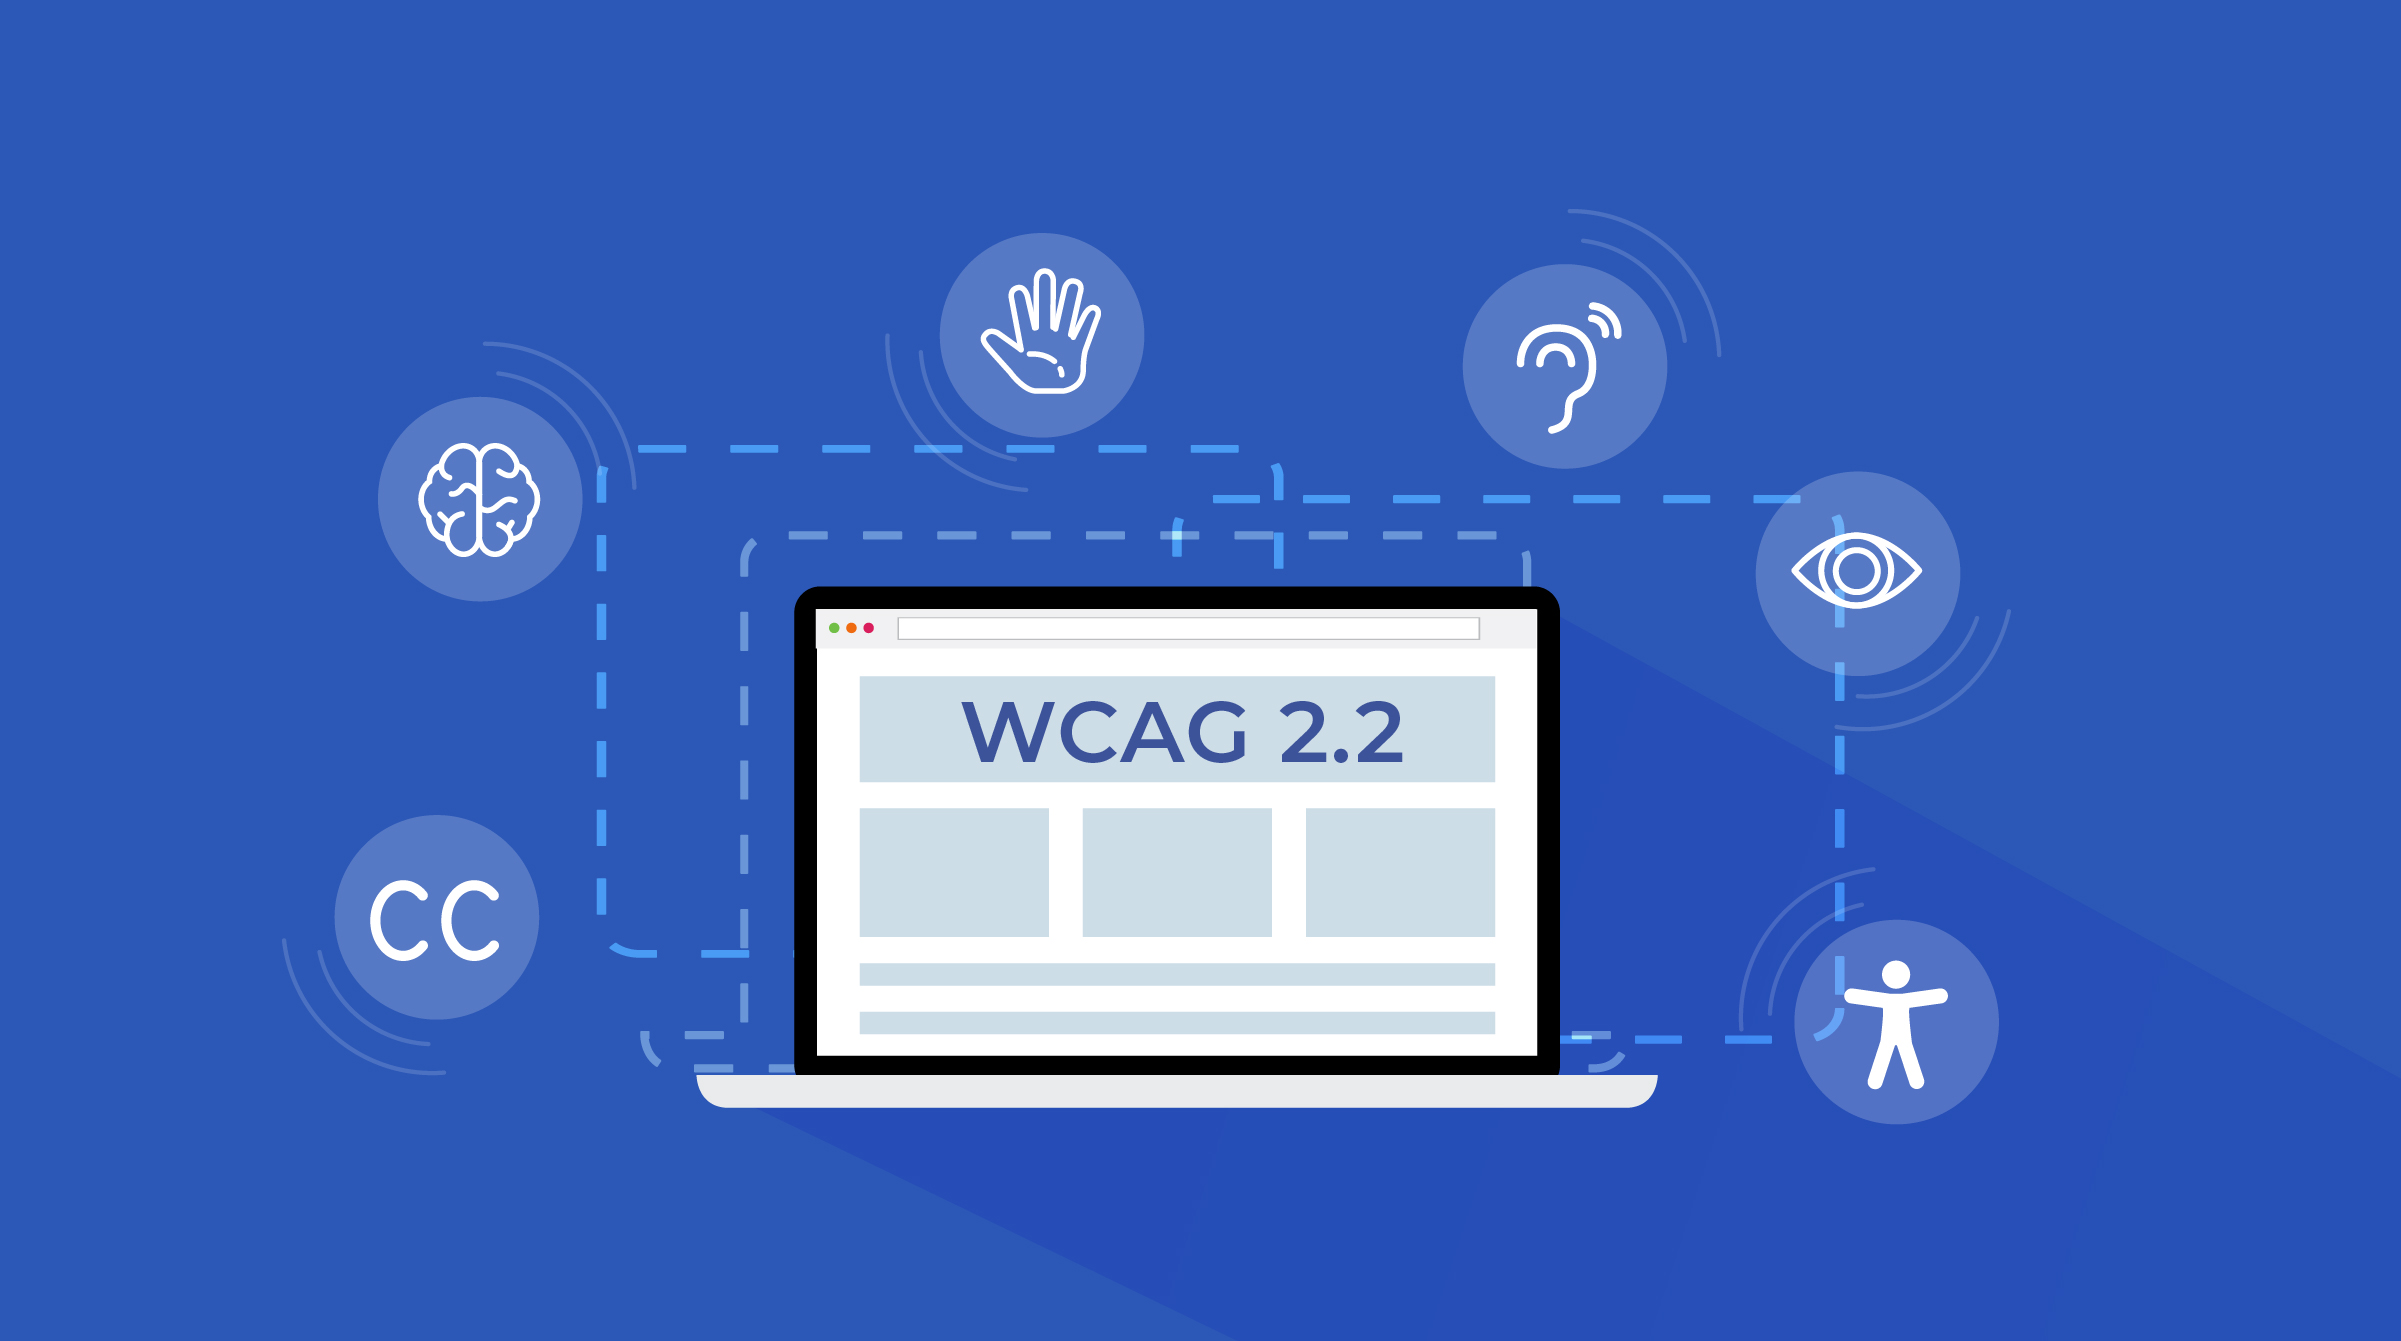 Laptop screen displaying WCAG 2.2